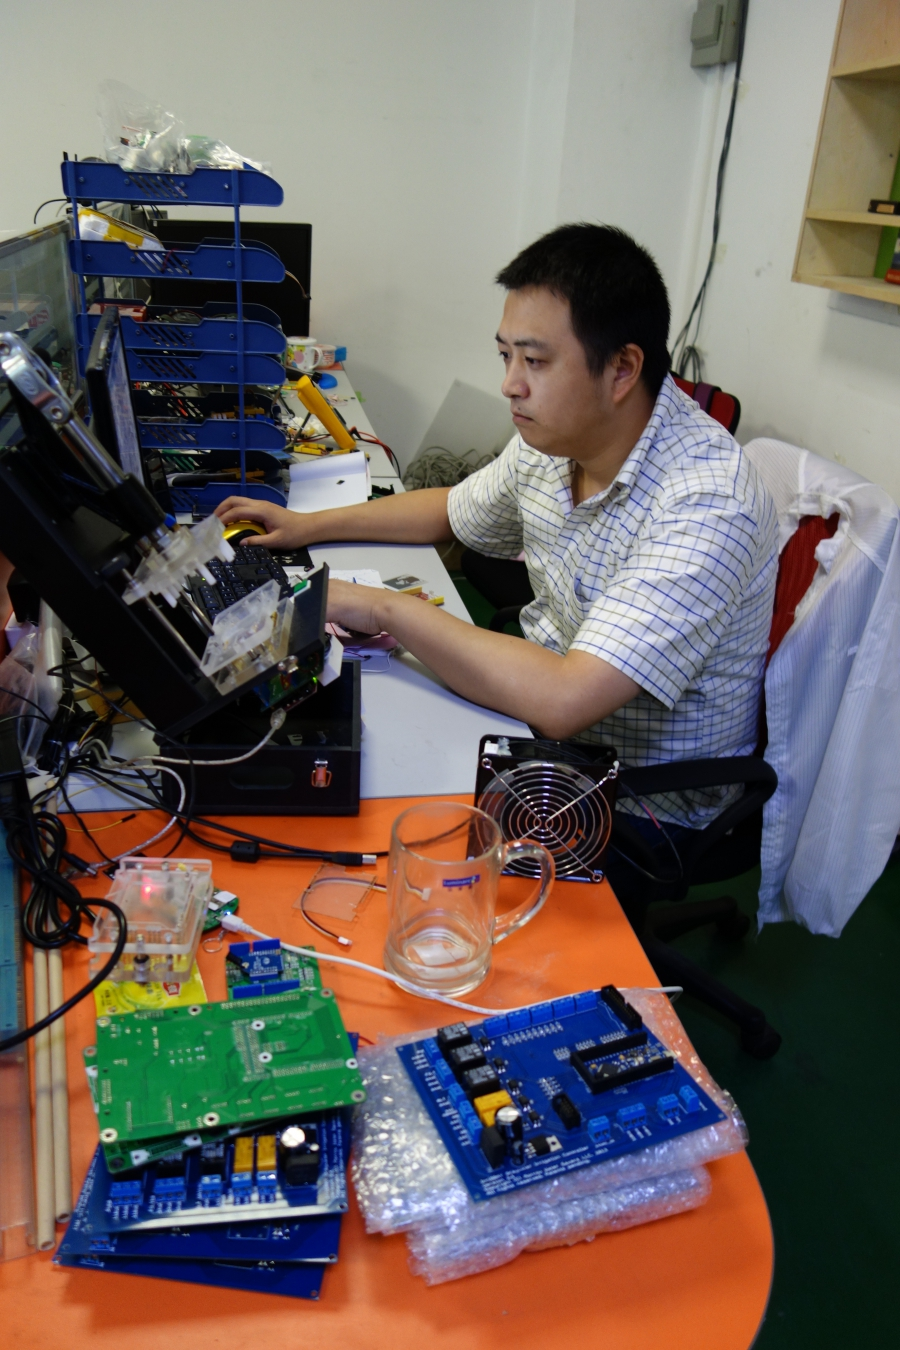 At work at SEEED Studio, which offers open-source hardware for makers